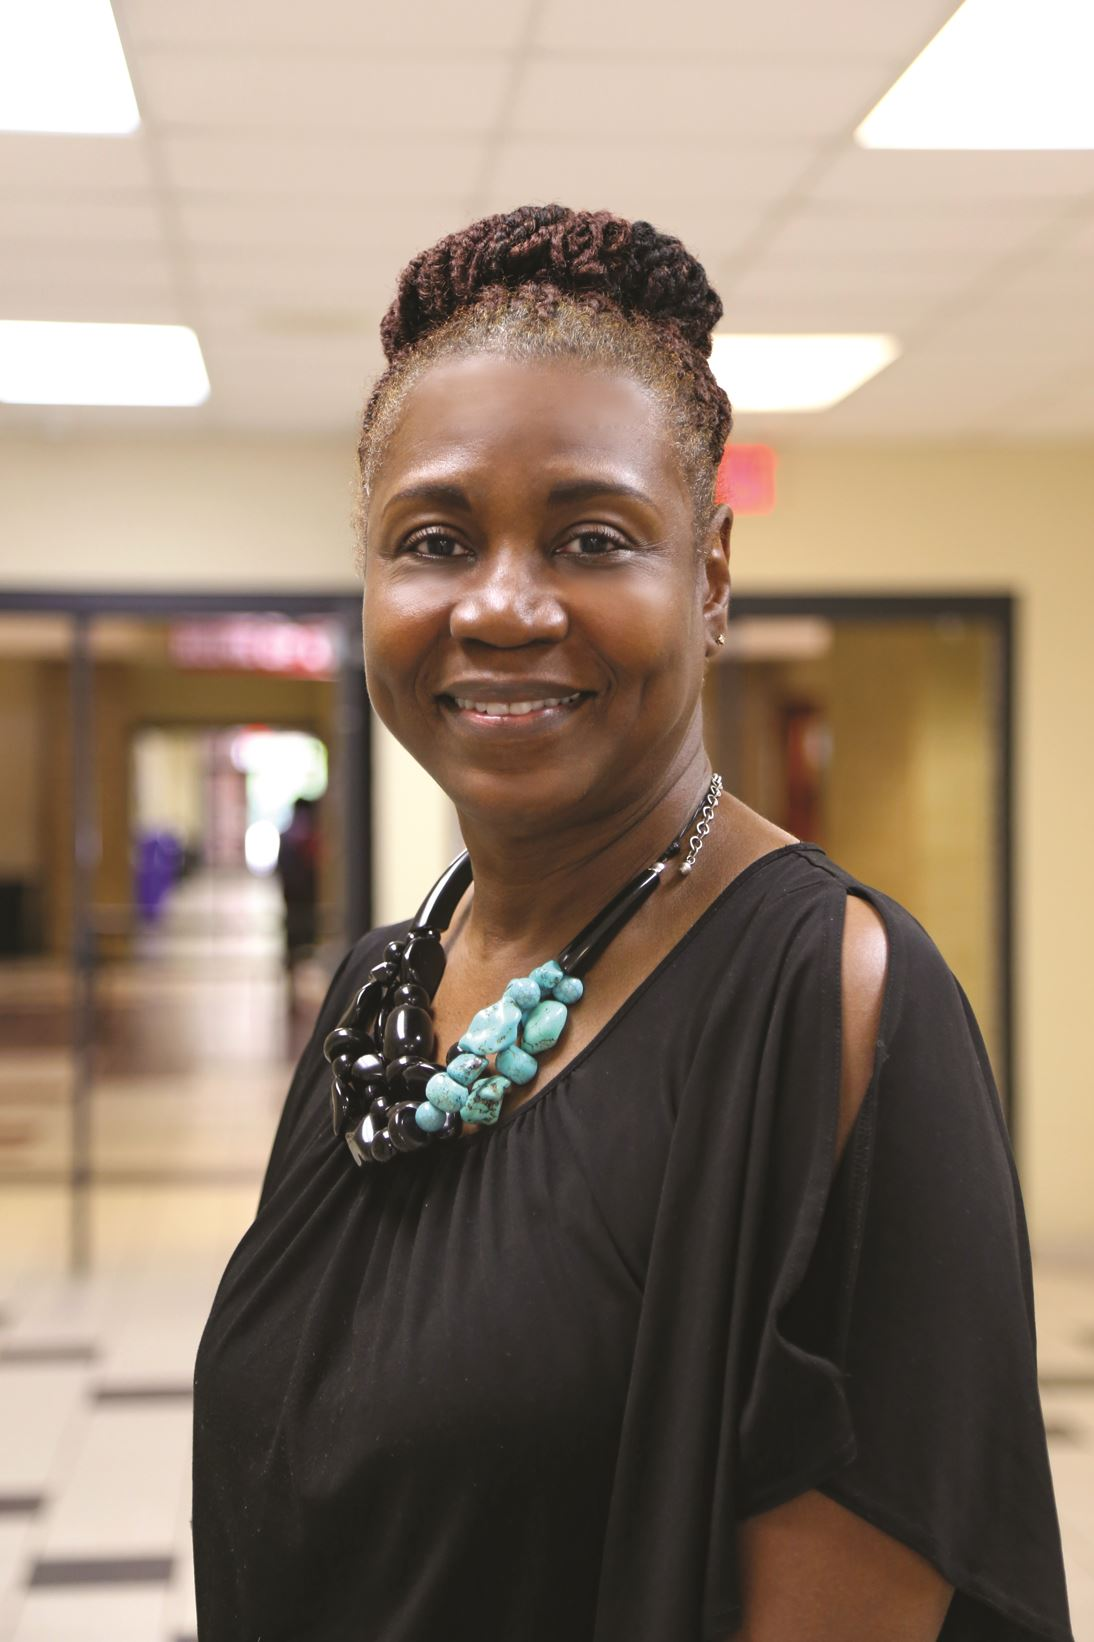 Image of Wanda Sheats, Principal.